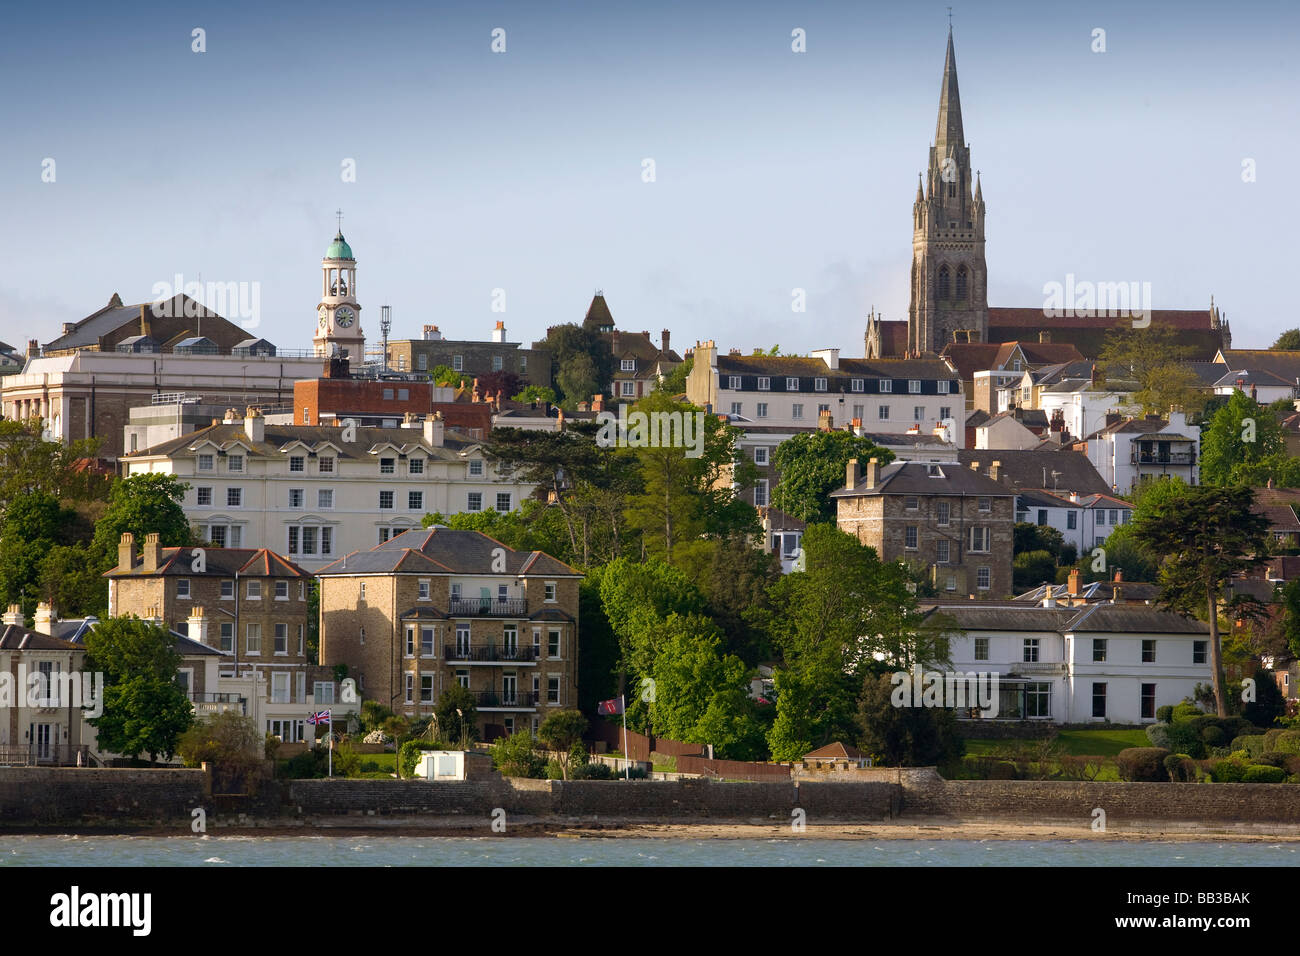 UK England Isle of Wight All Saints Church Pier Seafront Ryde - Stock Image